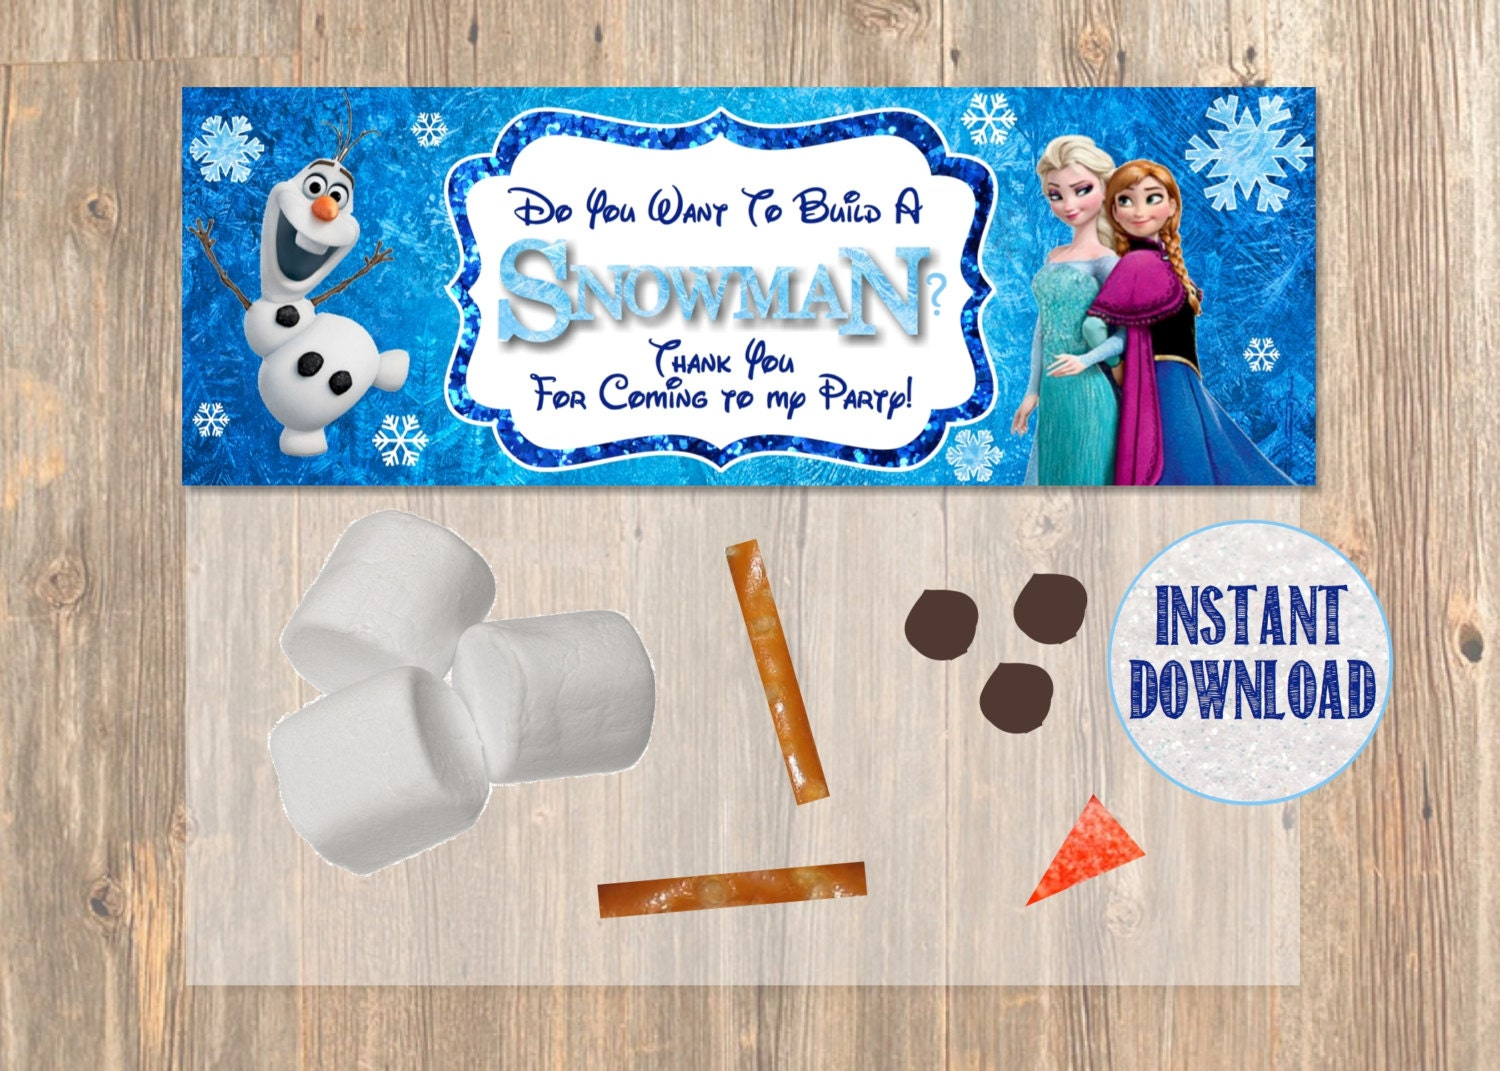 Do You Want To Build a Snowman Frozen Favor Bag by 4MustardSeeds